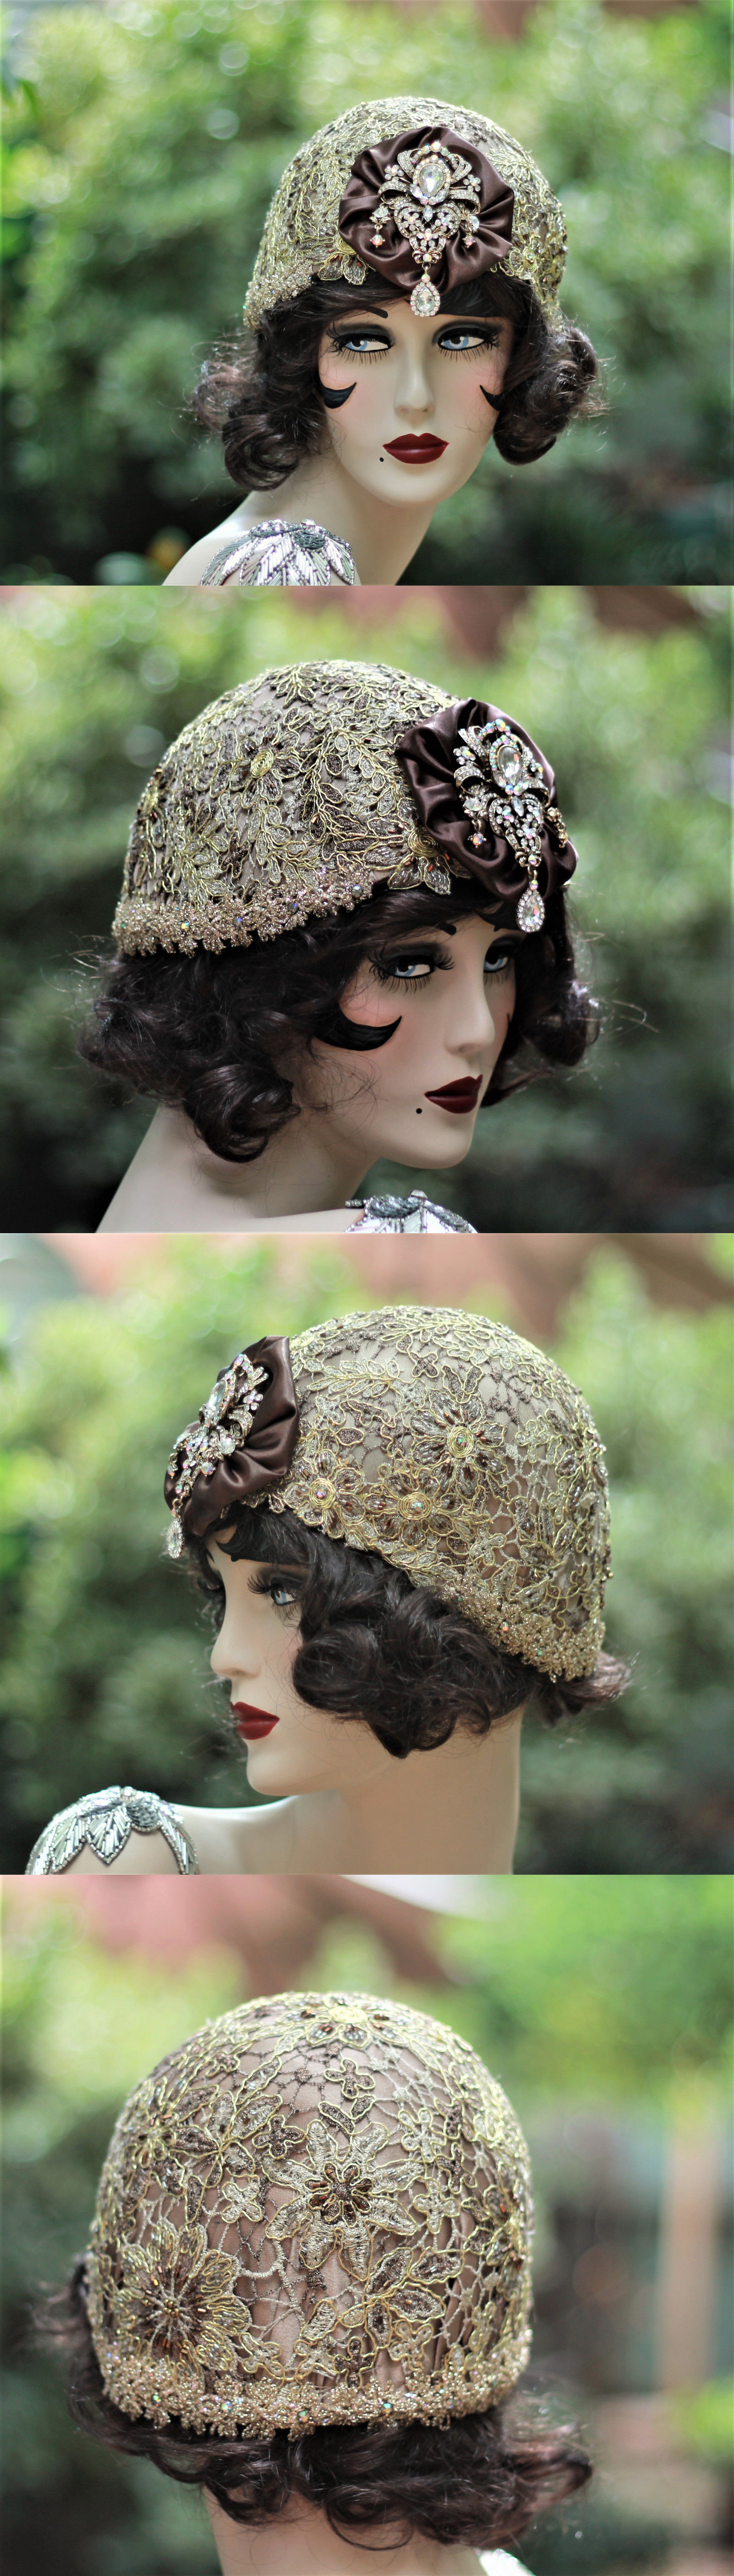 Womens Formal Hats 131476: 1920S Vintage Style Cloche Flapper Party Wedding Hat Rhinestones Gold Lace -> BUY IT NOW ONLY: $205 on eBay!